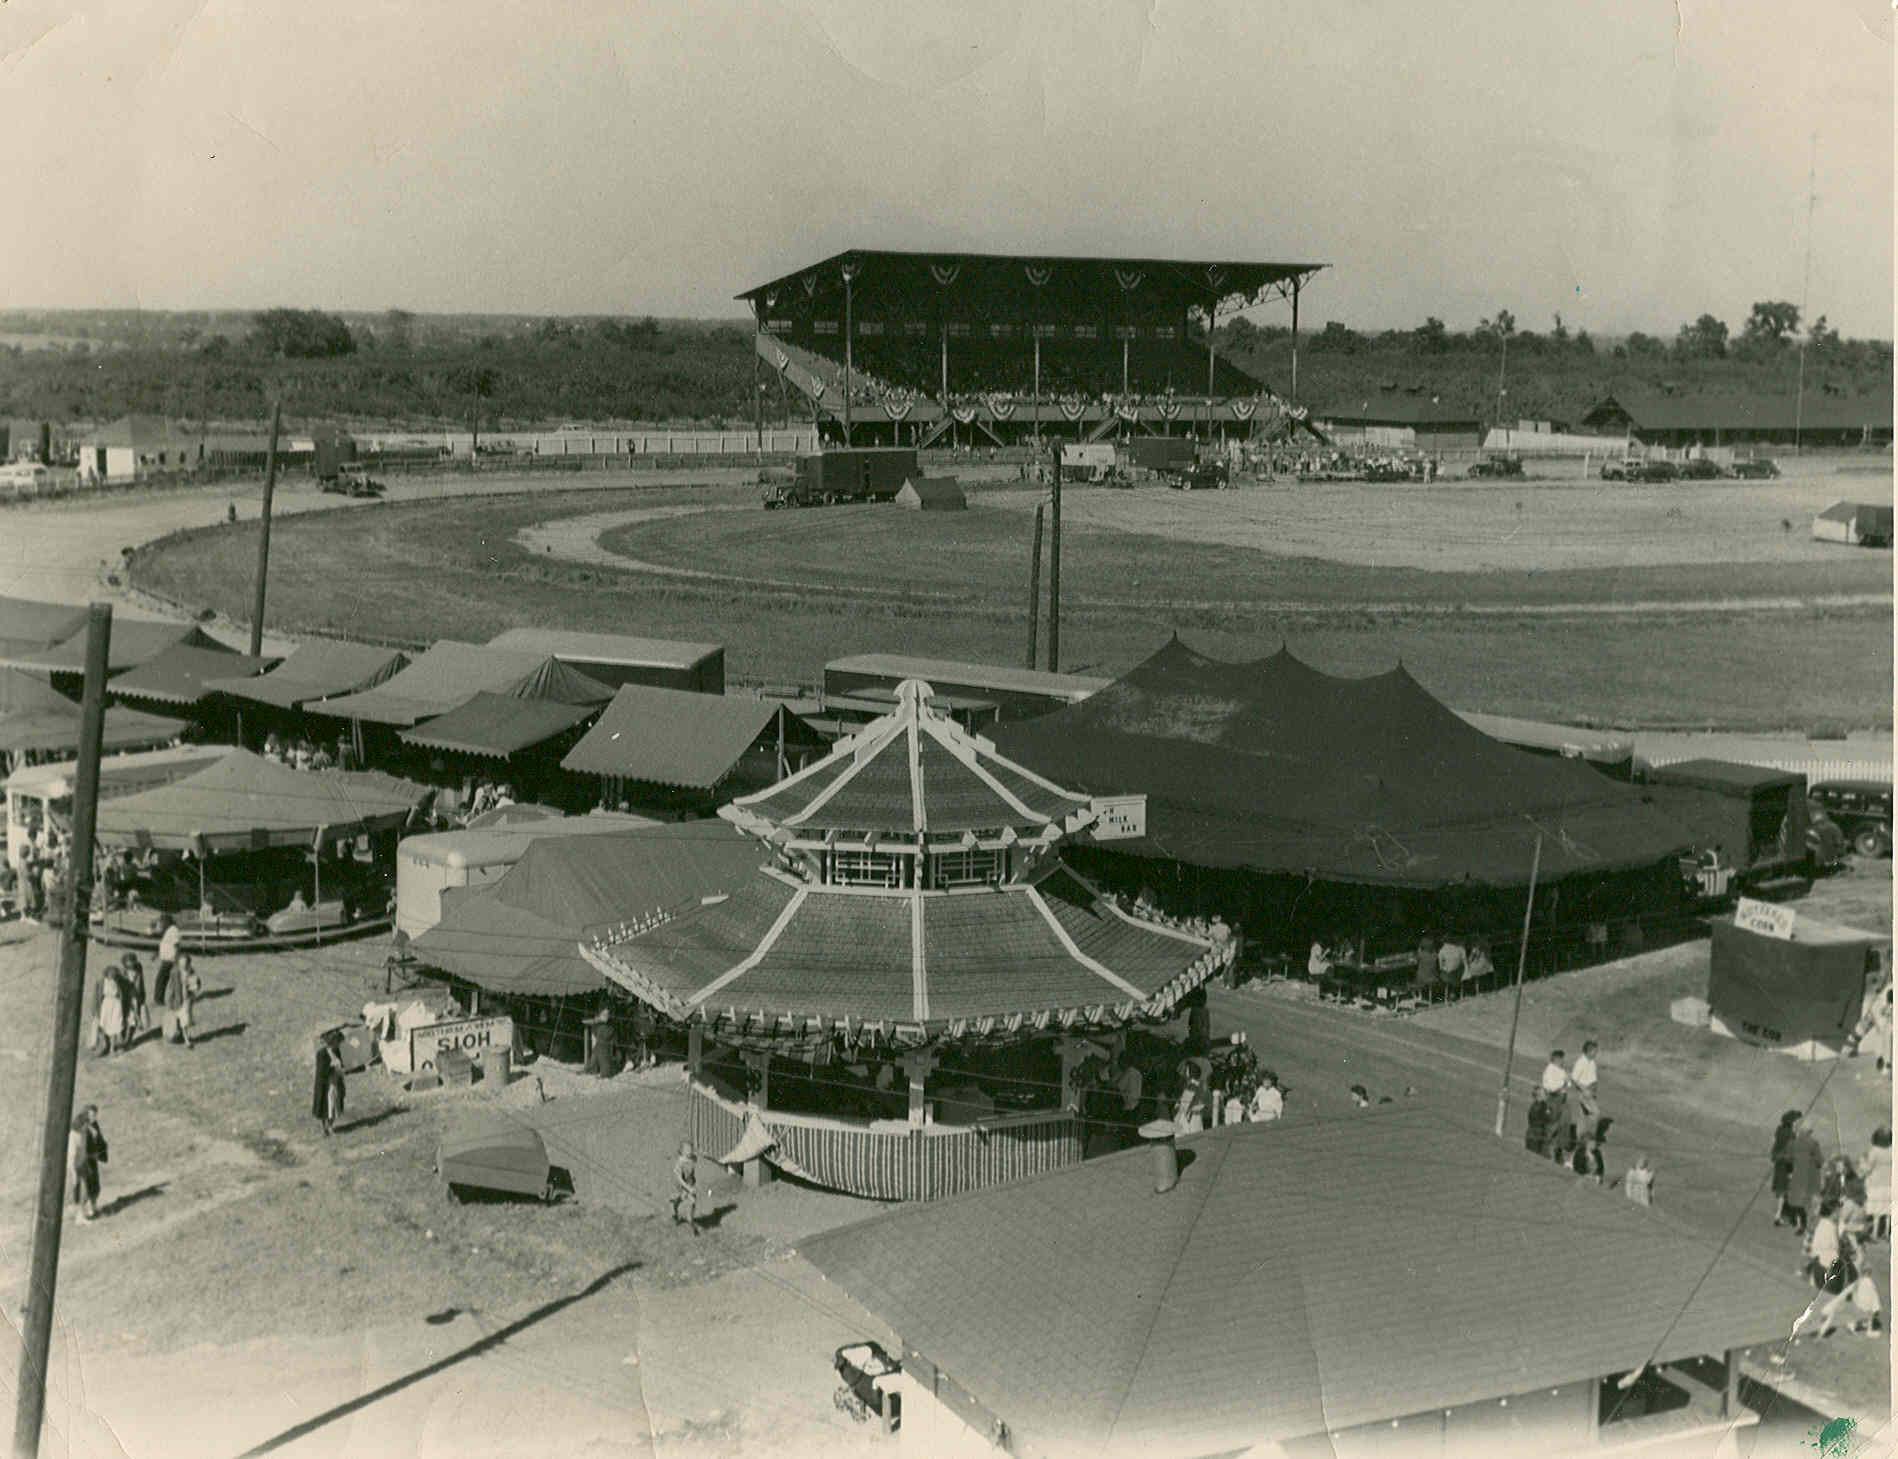 The Vernor's Pavilion was a regular sight at the Niagara County Fair in the 1940s. (Photo provided by History Center)